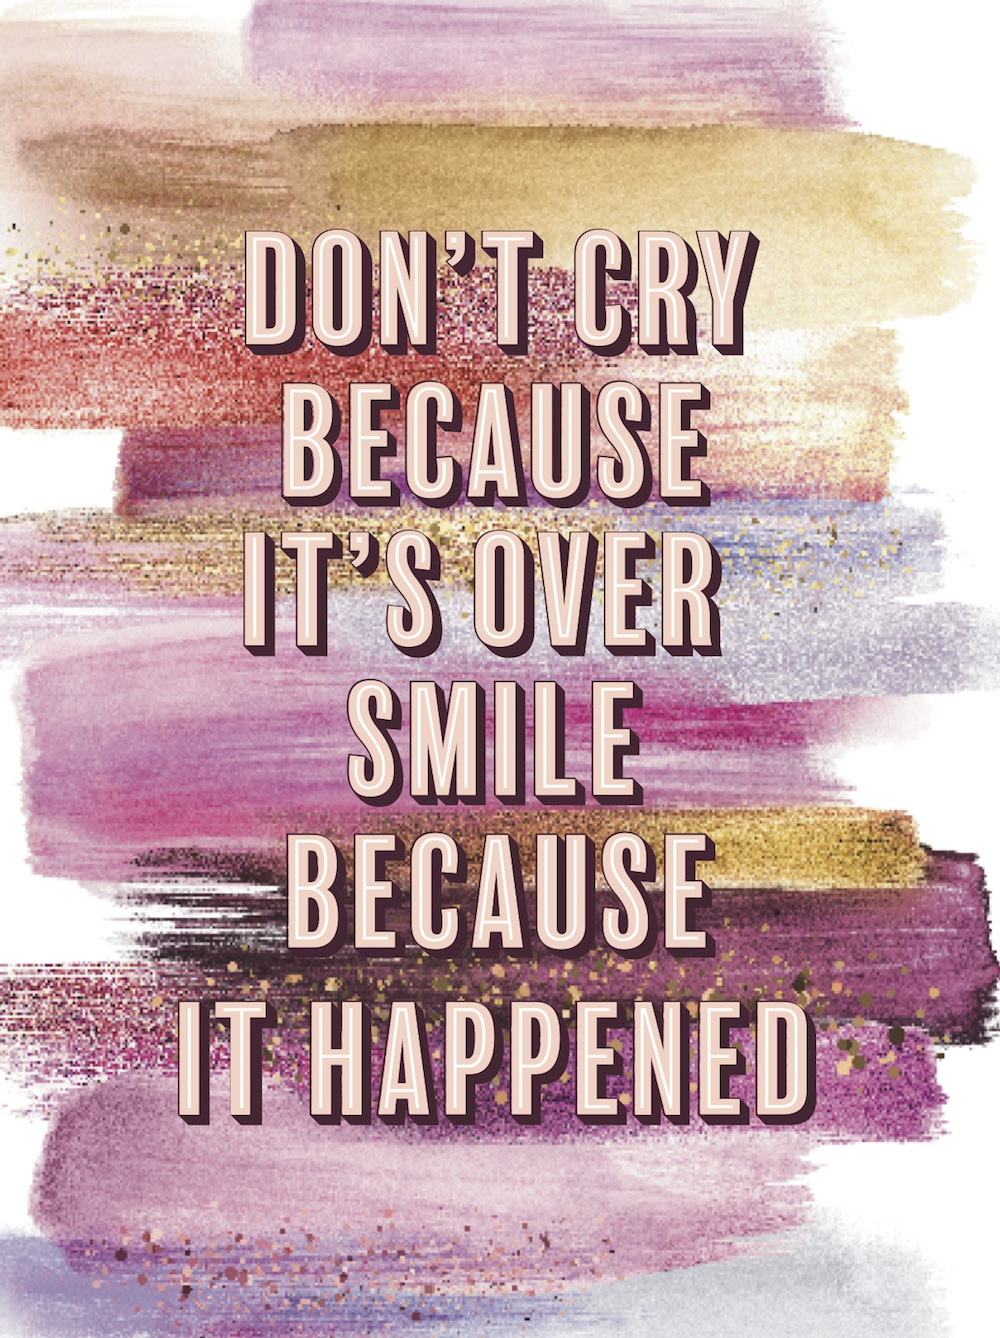 Spreuk van de week: Don't cry because it's over, smile because it happened